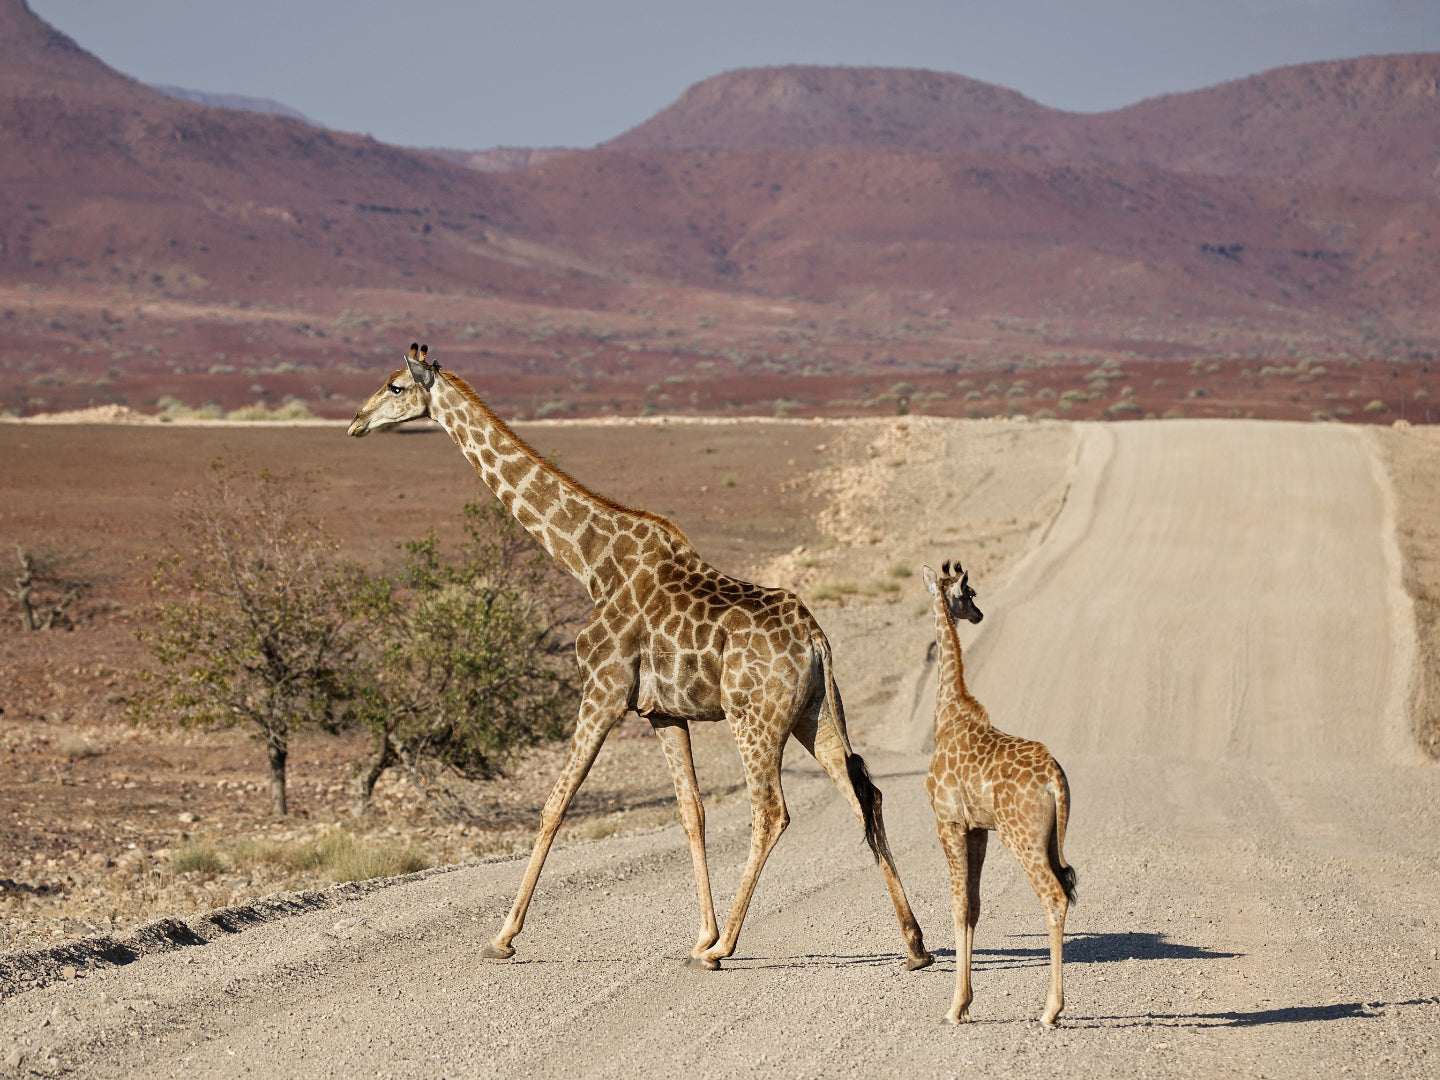 Giraffes and Impalas